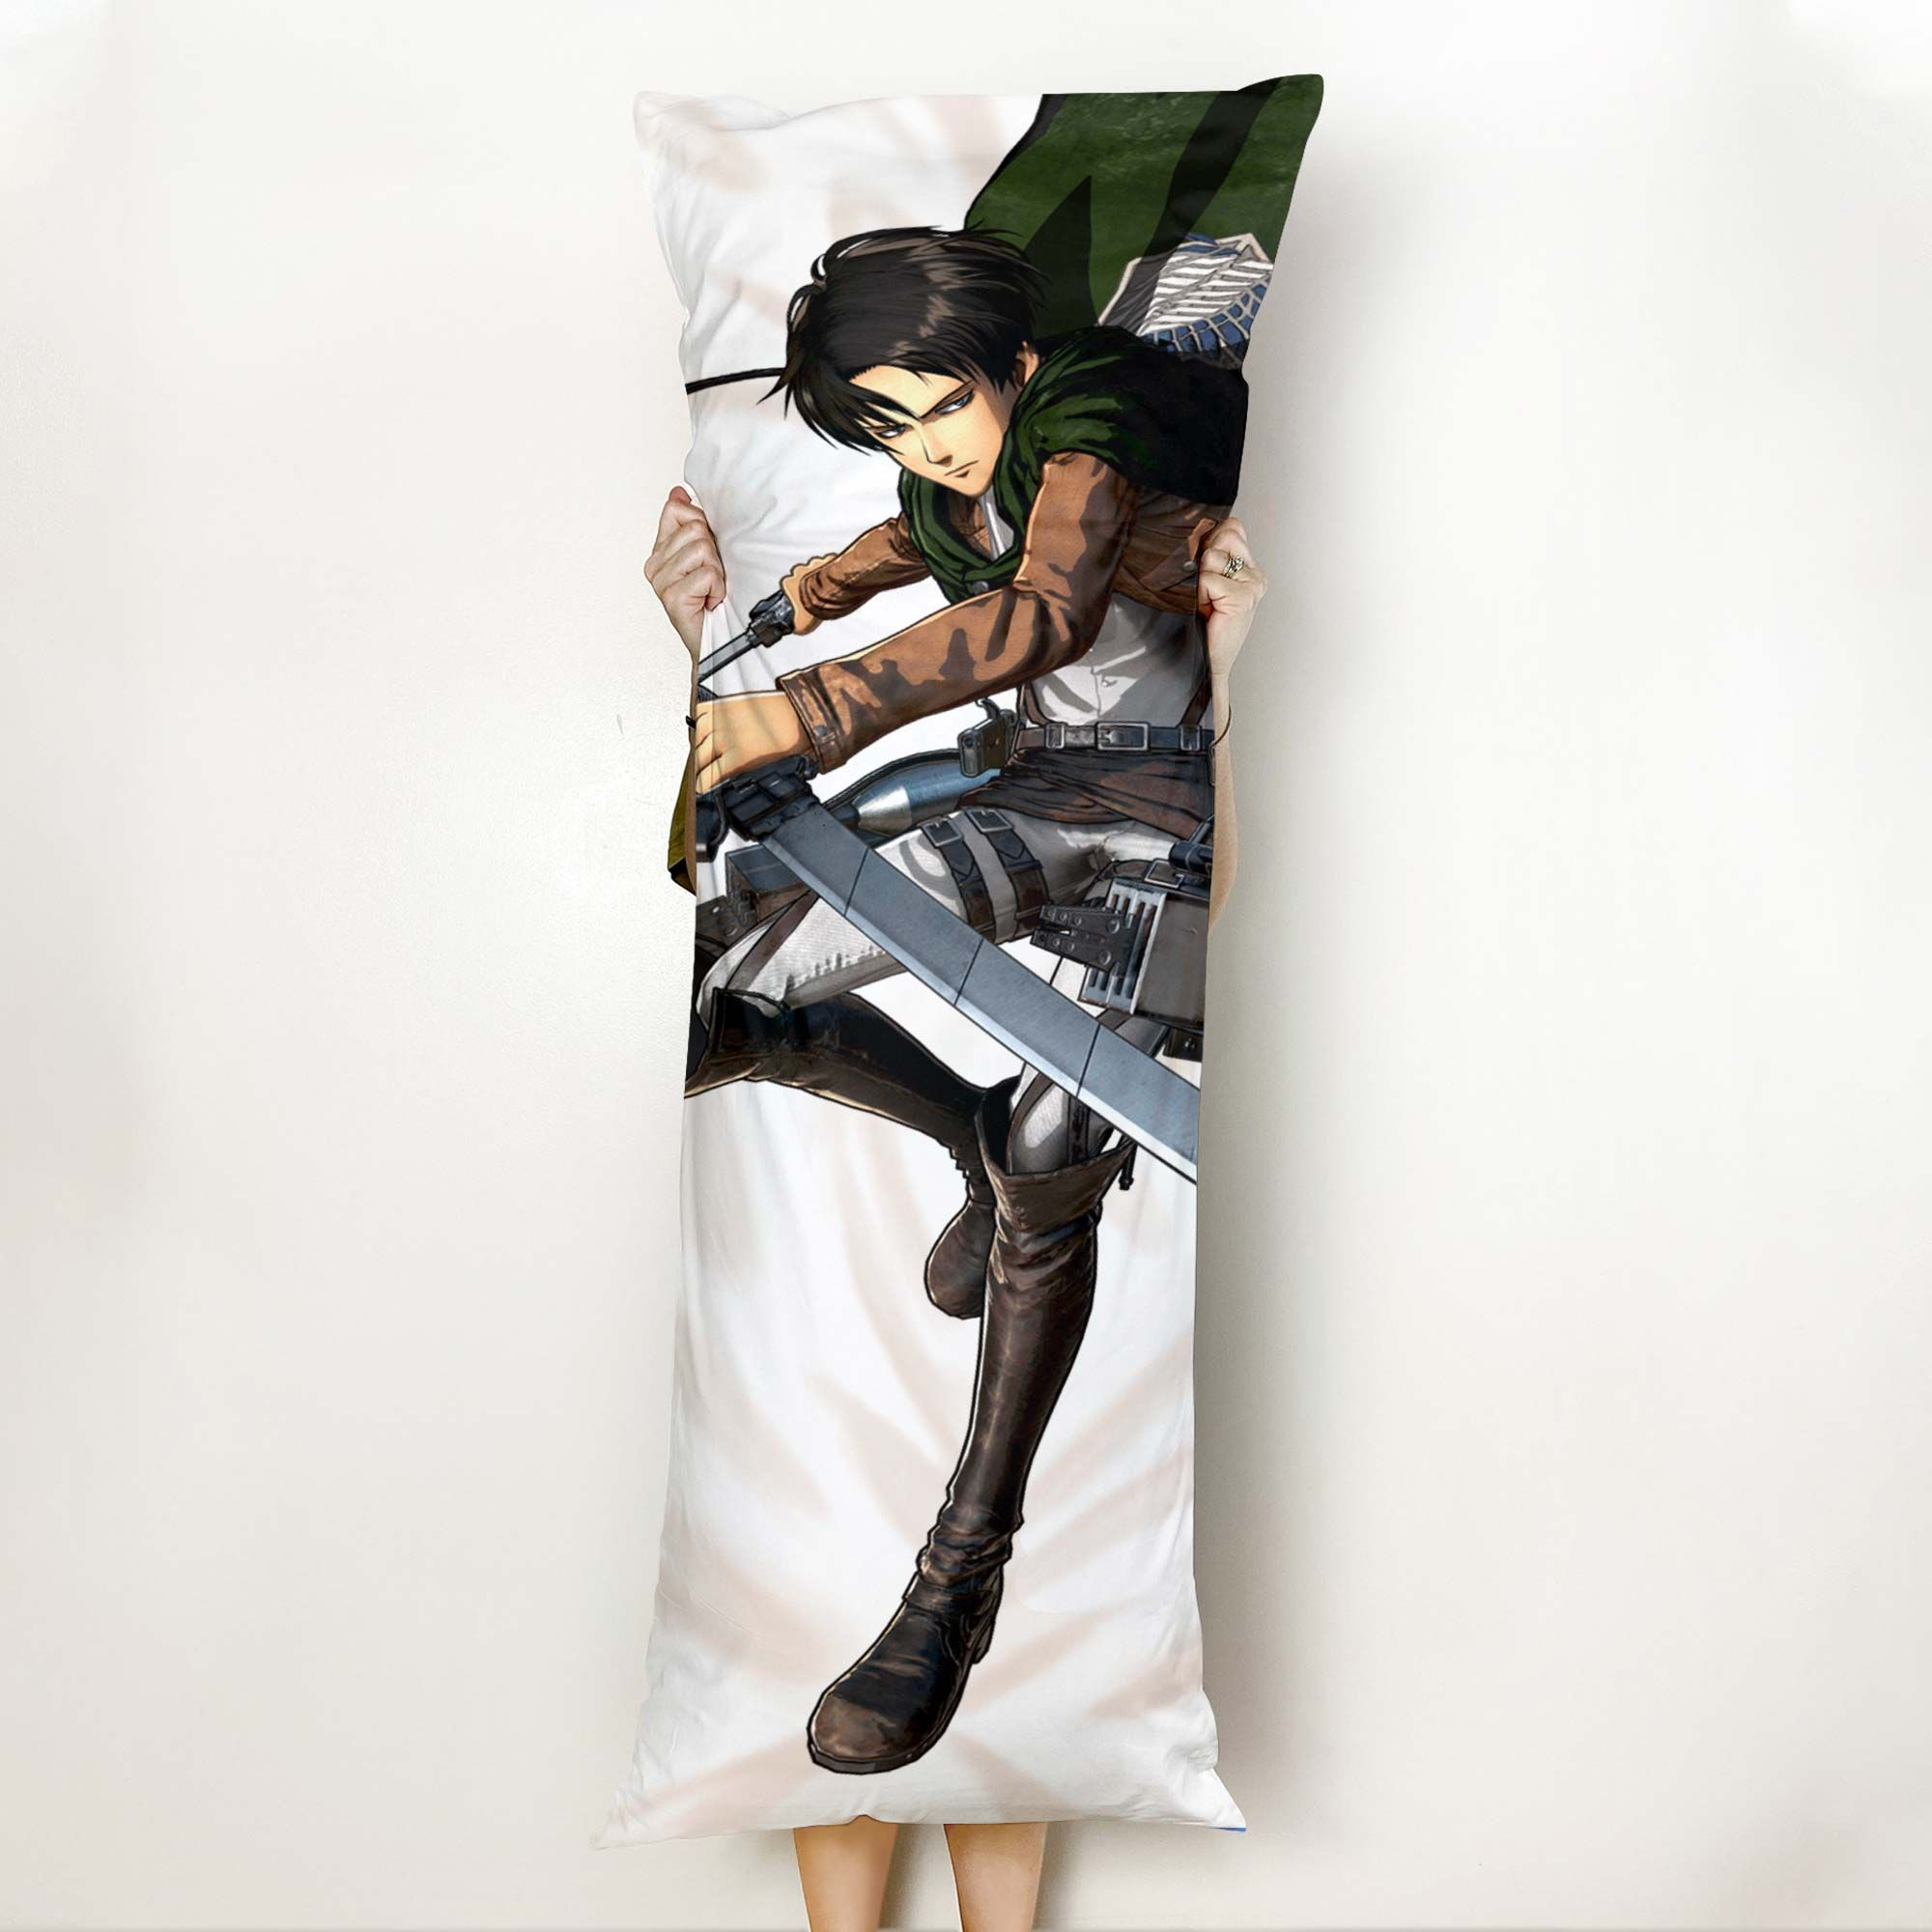 Levi Ackerman Body Pillow Cover Custom Attack On Titan Anime Gifts Official Merch GO0110